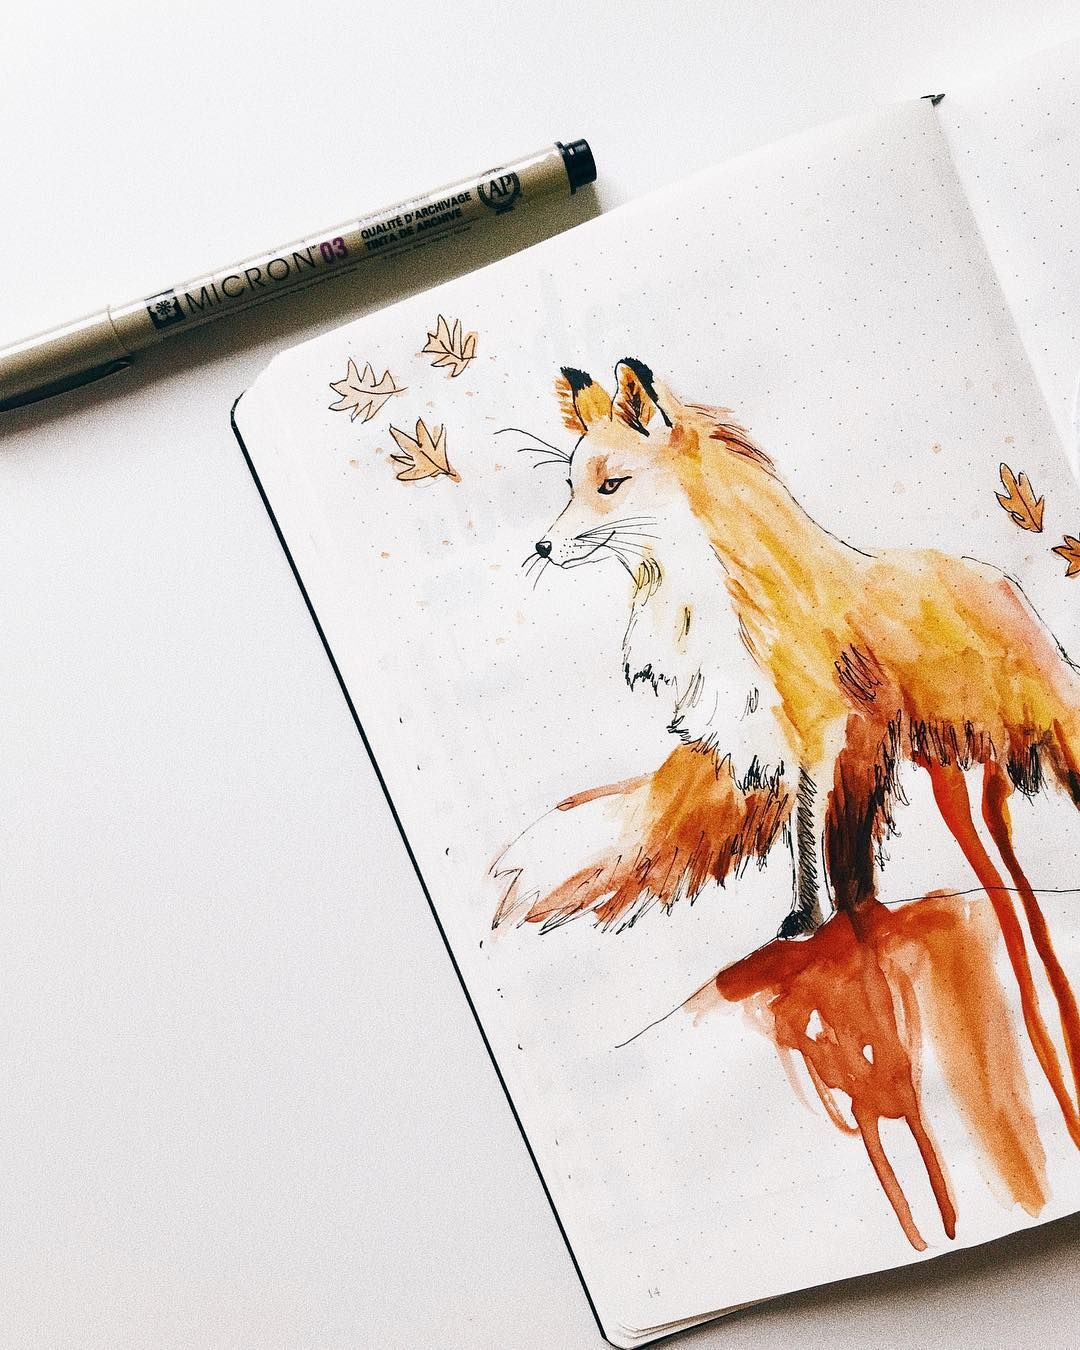 45 foxy and sly fox themed bullet journal ideas my inner creative discoverbulletjournal